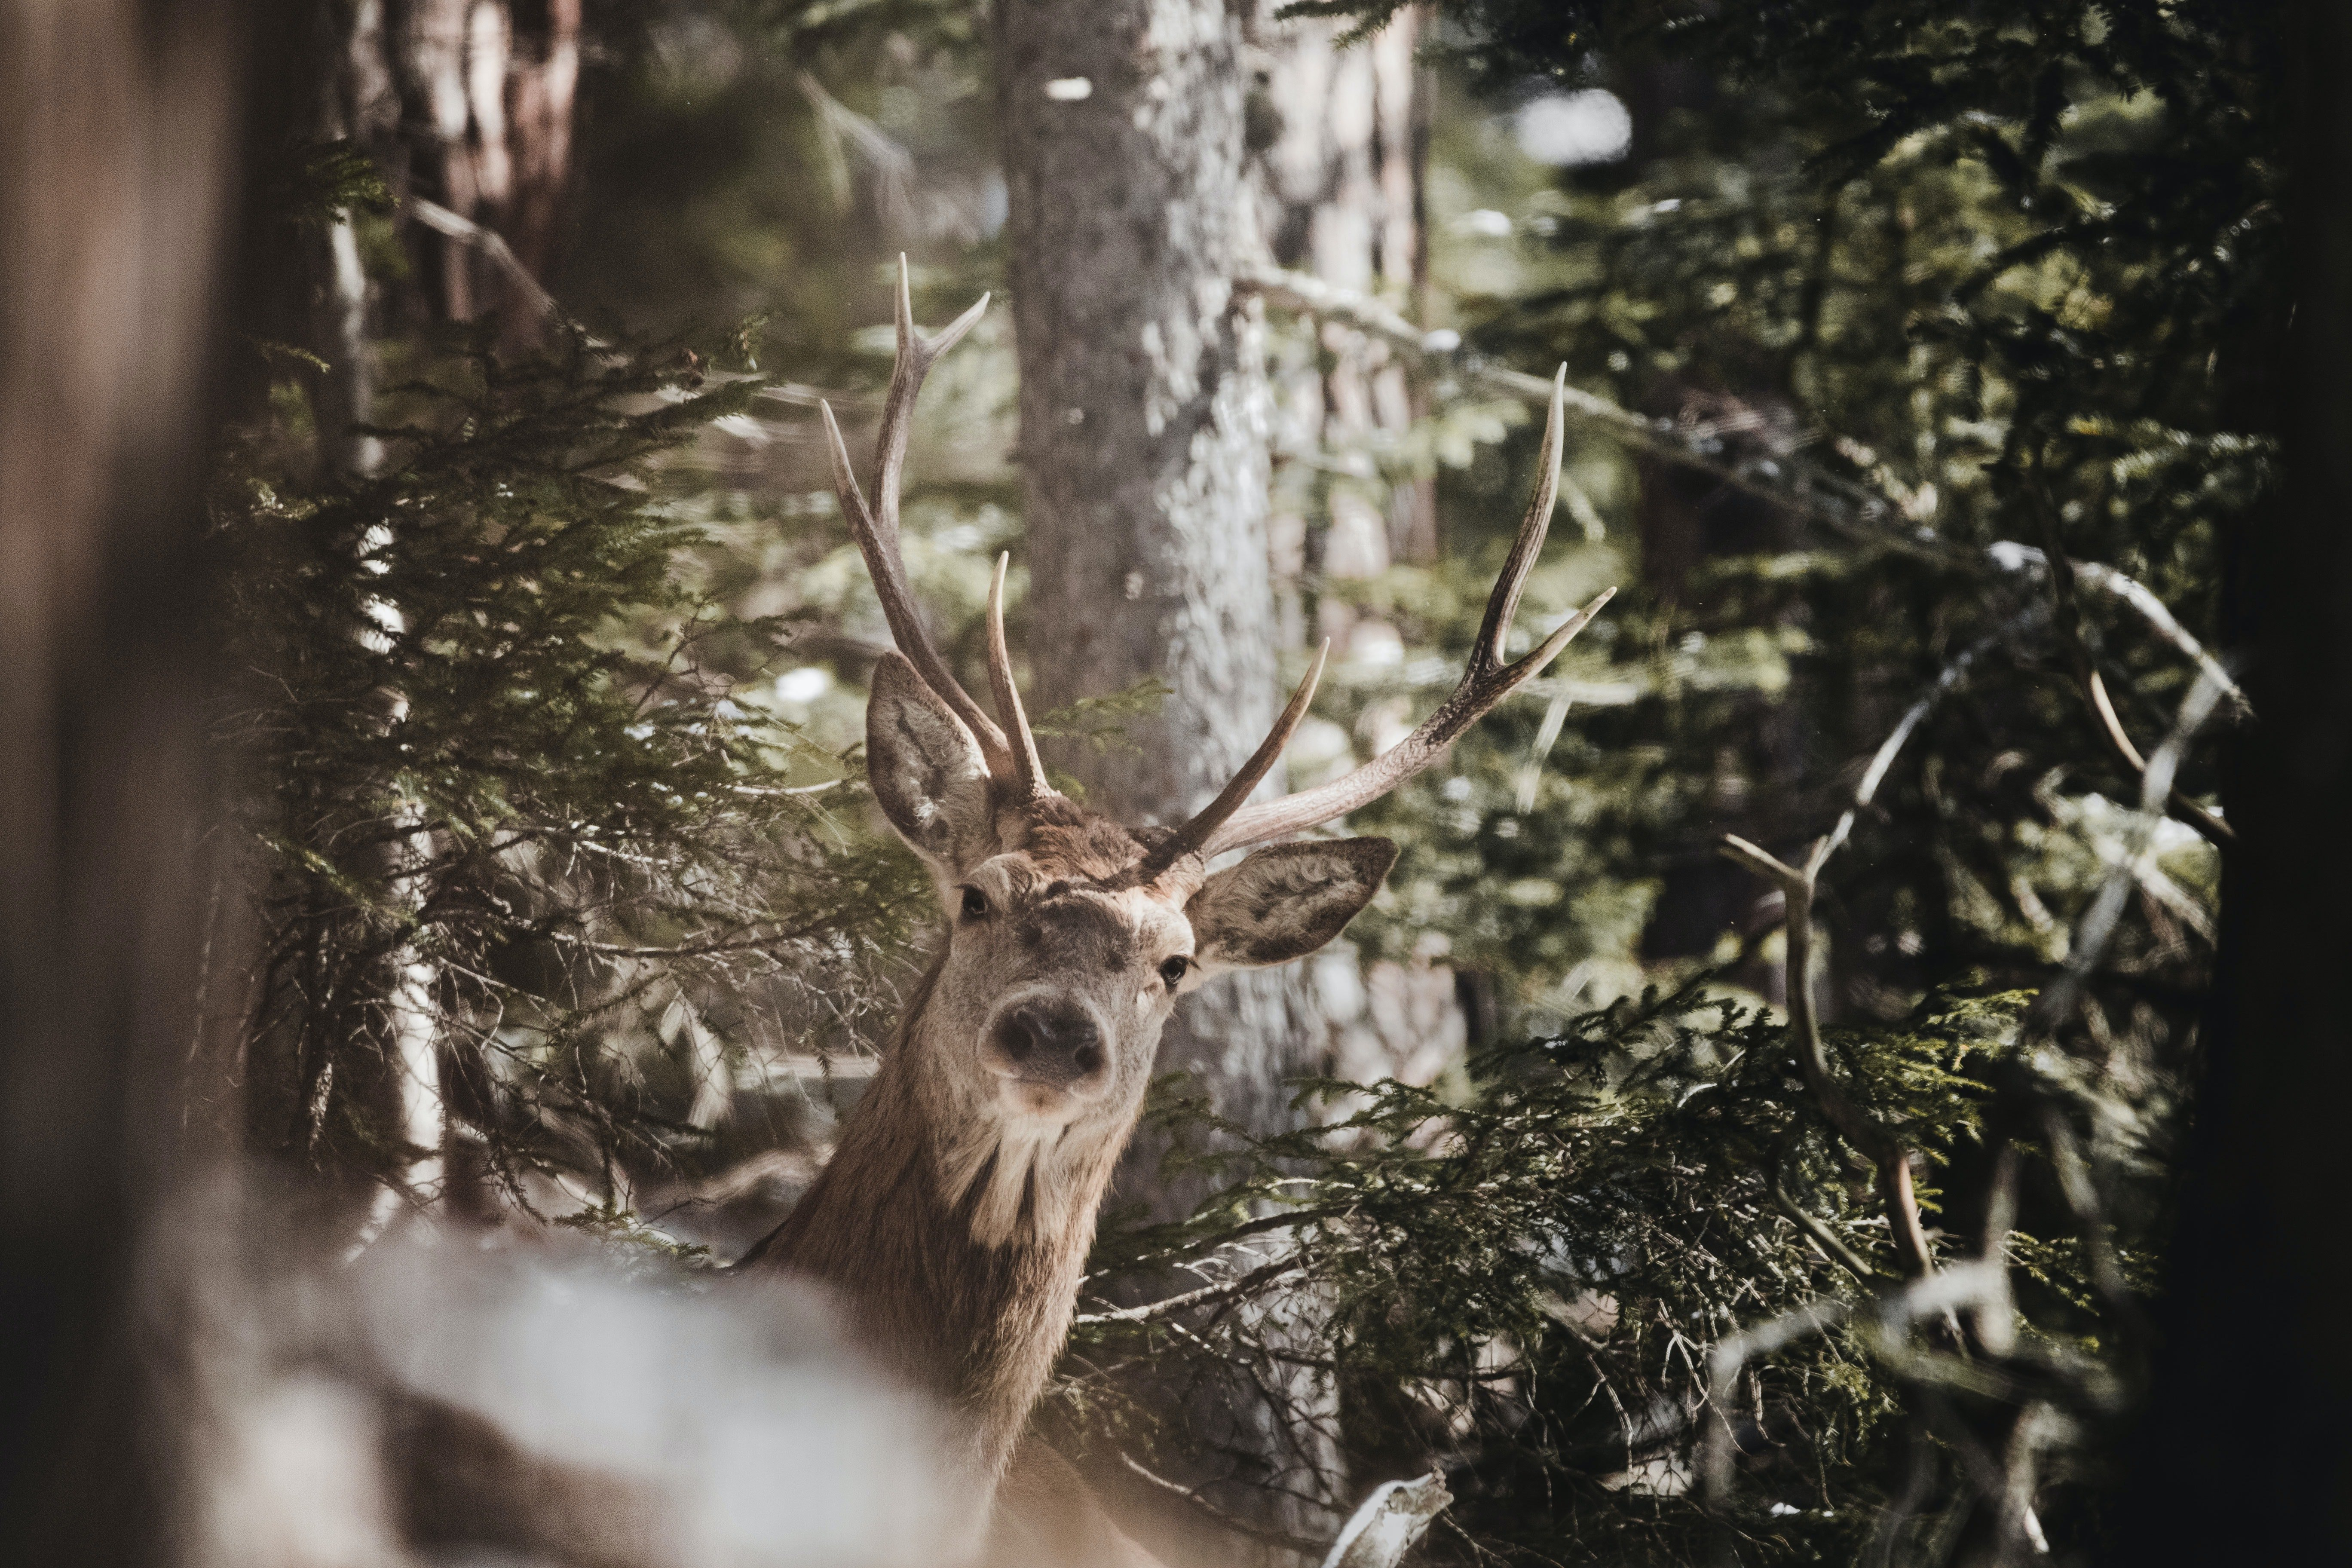 A Moose is captured in the middle of a forest | Photo: Pexels/cmonphotography